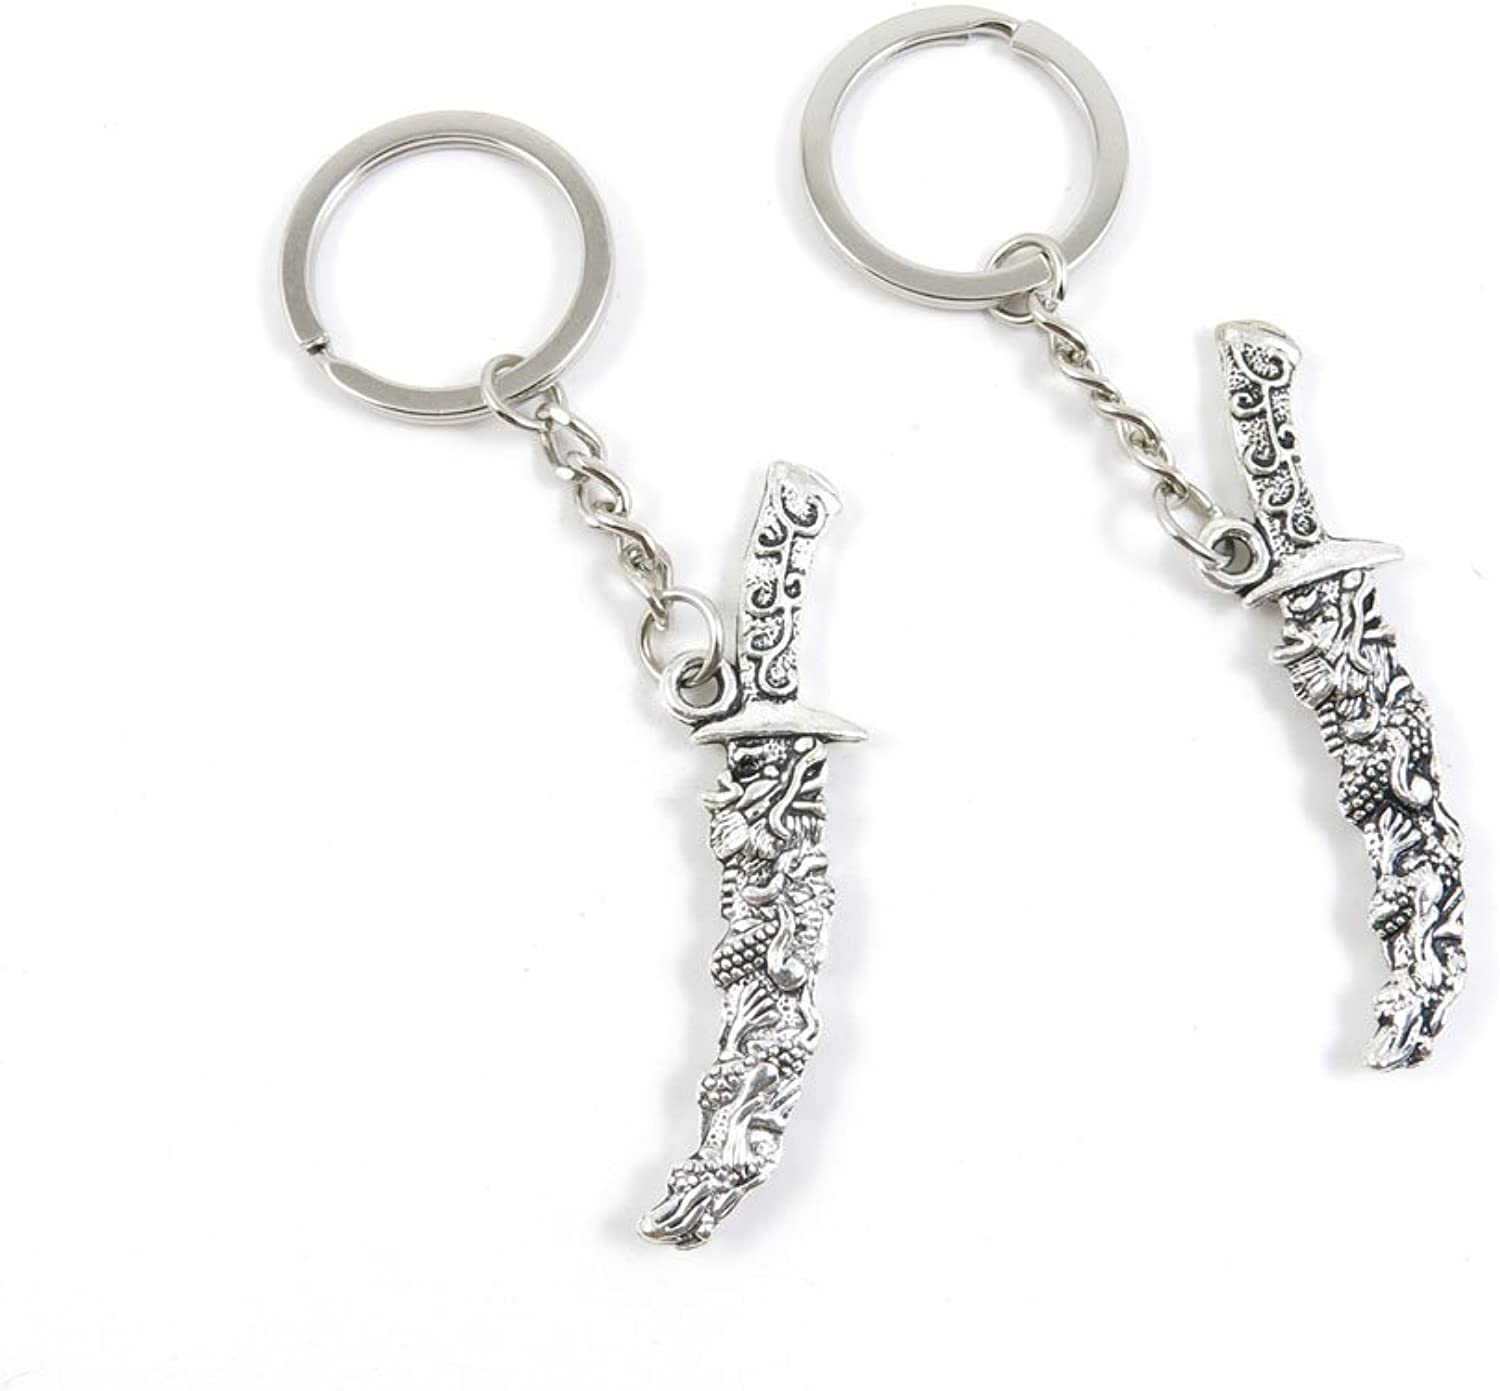 100 Pieces Keychain Keyring Door Car Key Chain Ring Tag Charms Bulk Supply Jewelry Making Clasp Findings E3PK5C Dragon Dagger